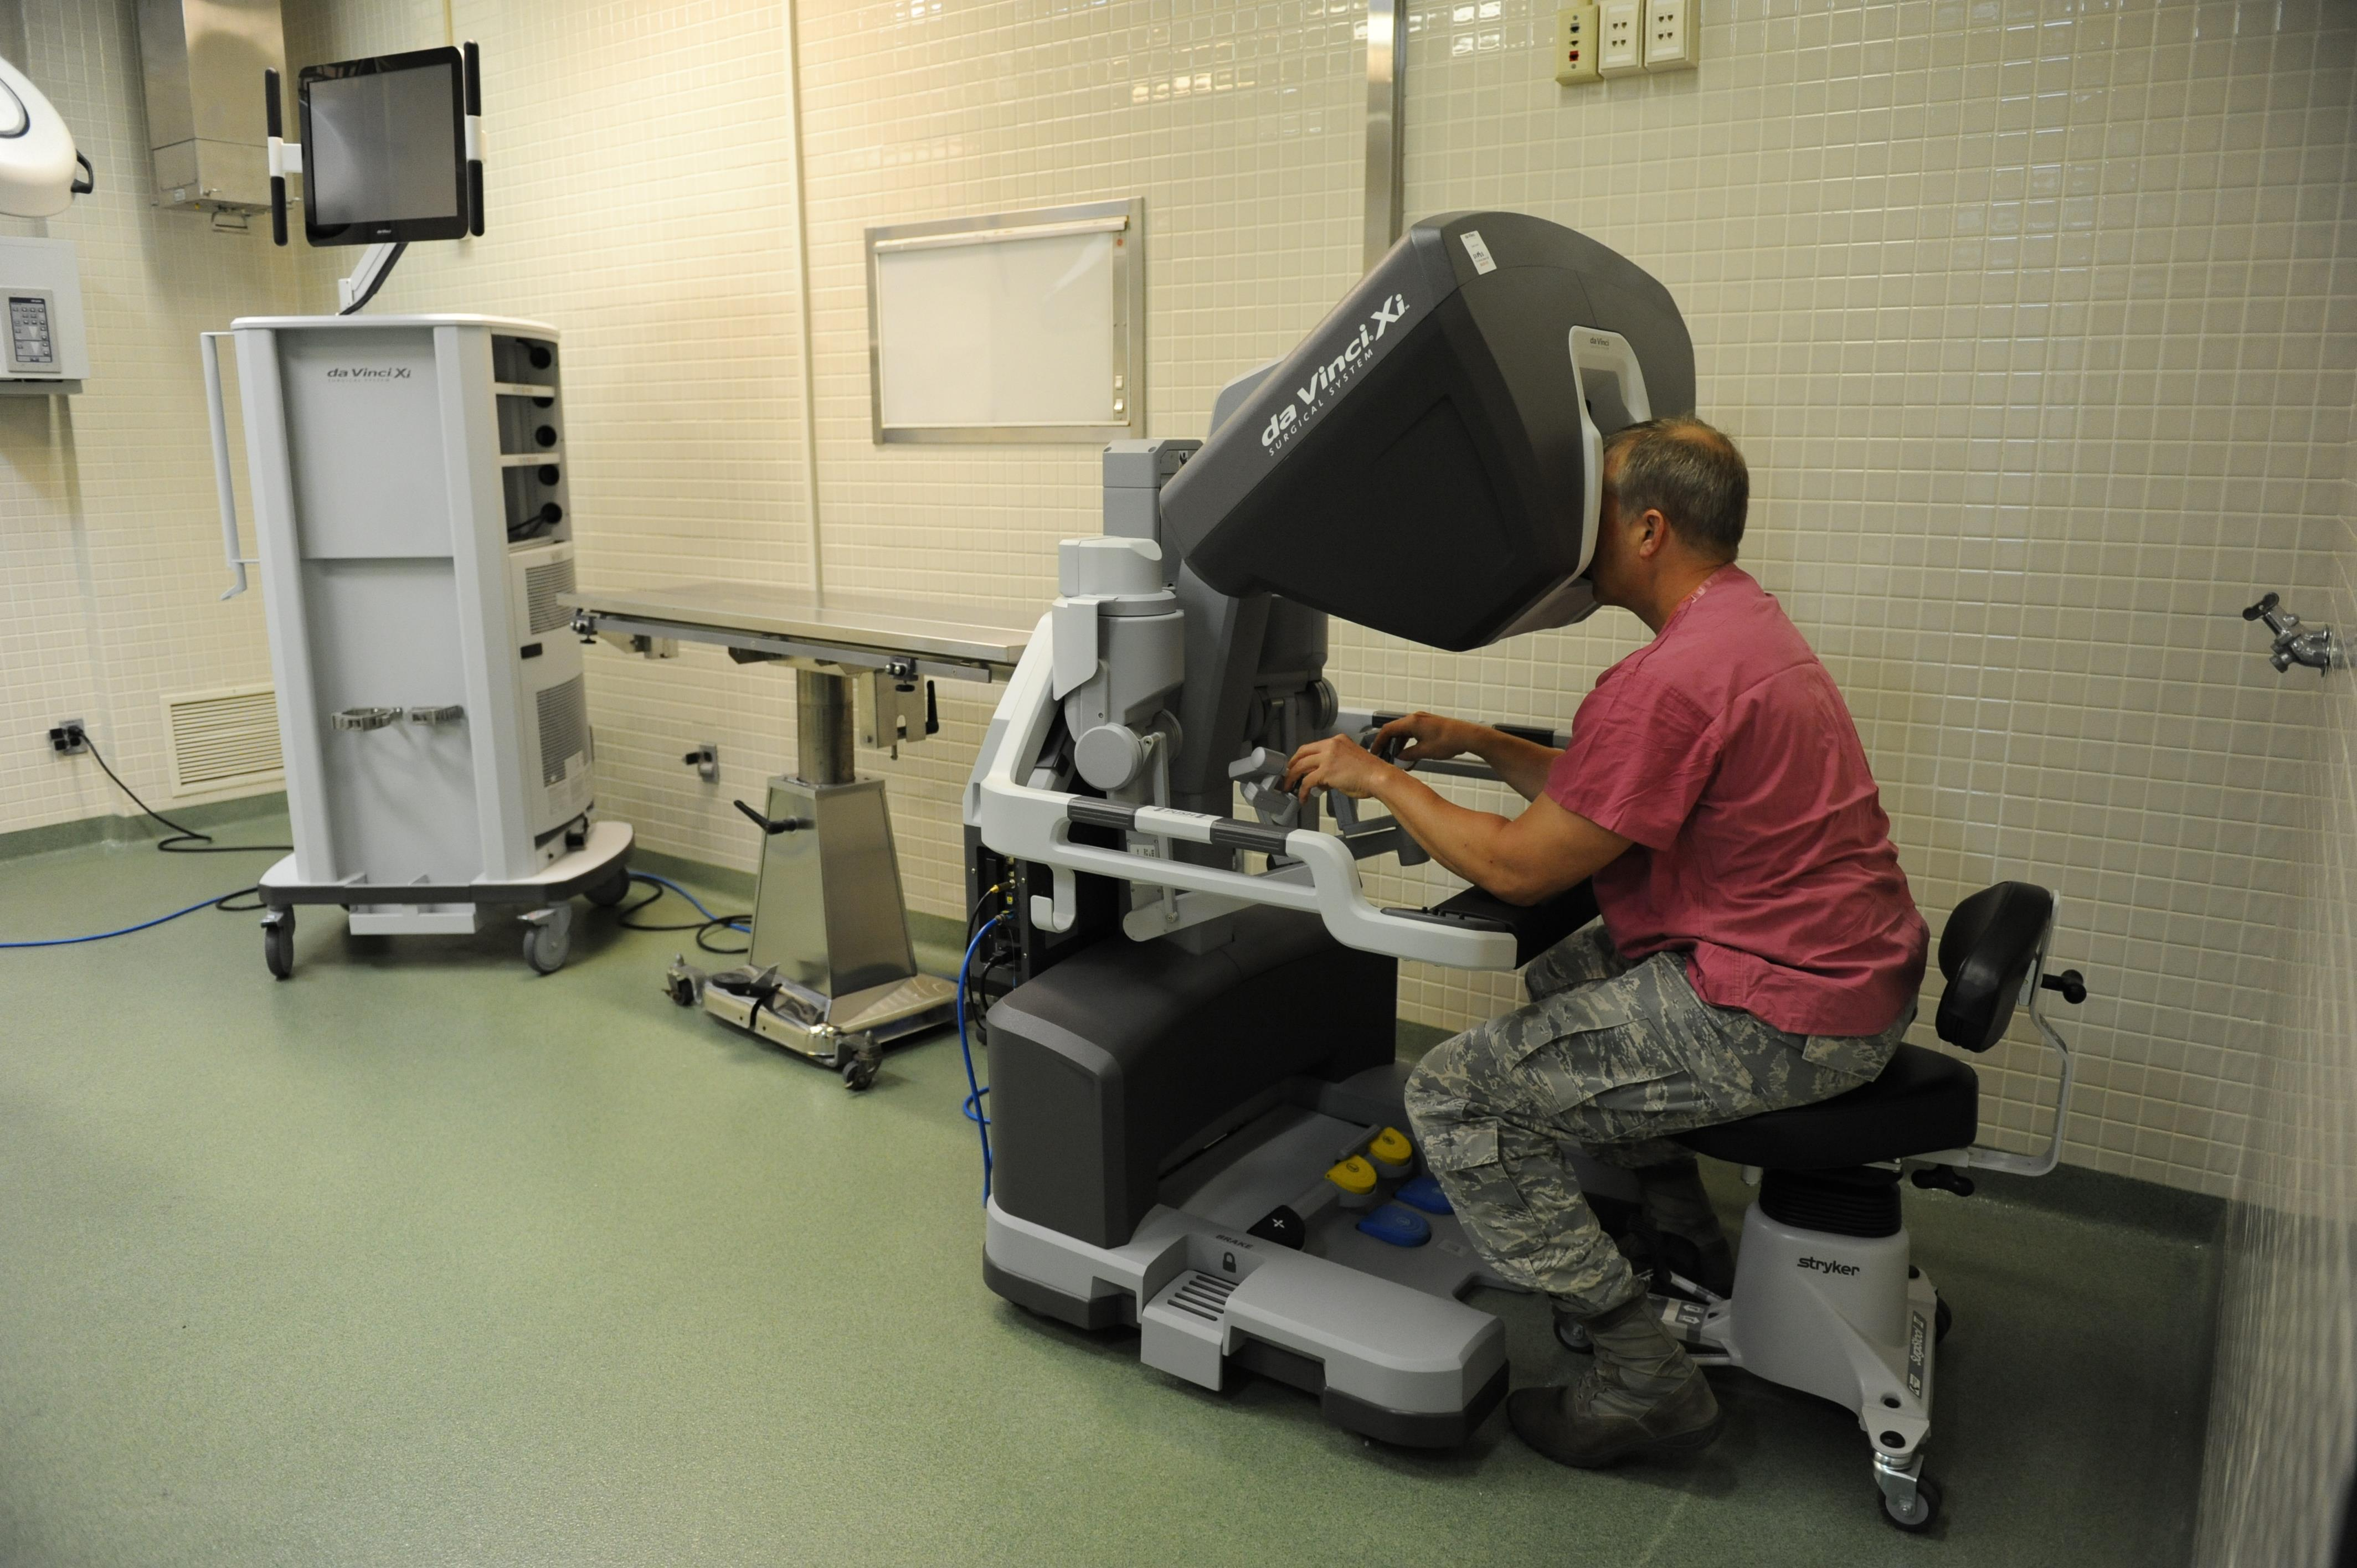 environmental impact of robotic surgery How has this technology been received, accepted low environmental impact robotic surgery - how has this technology been received.